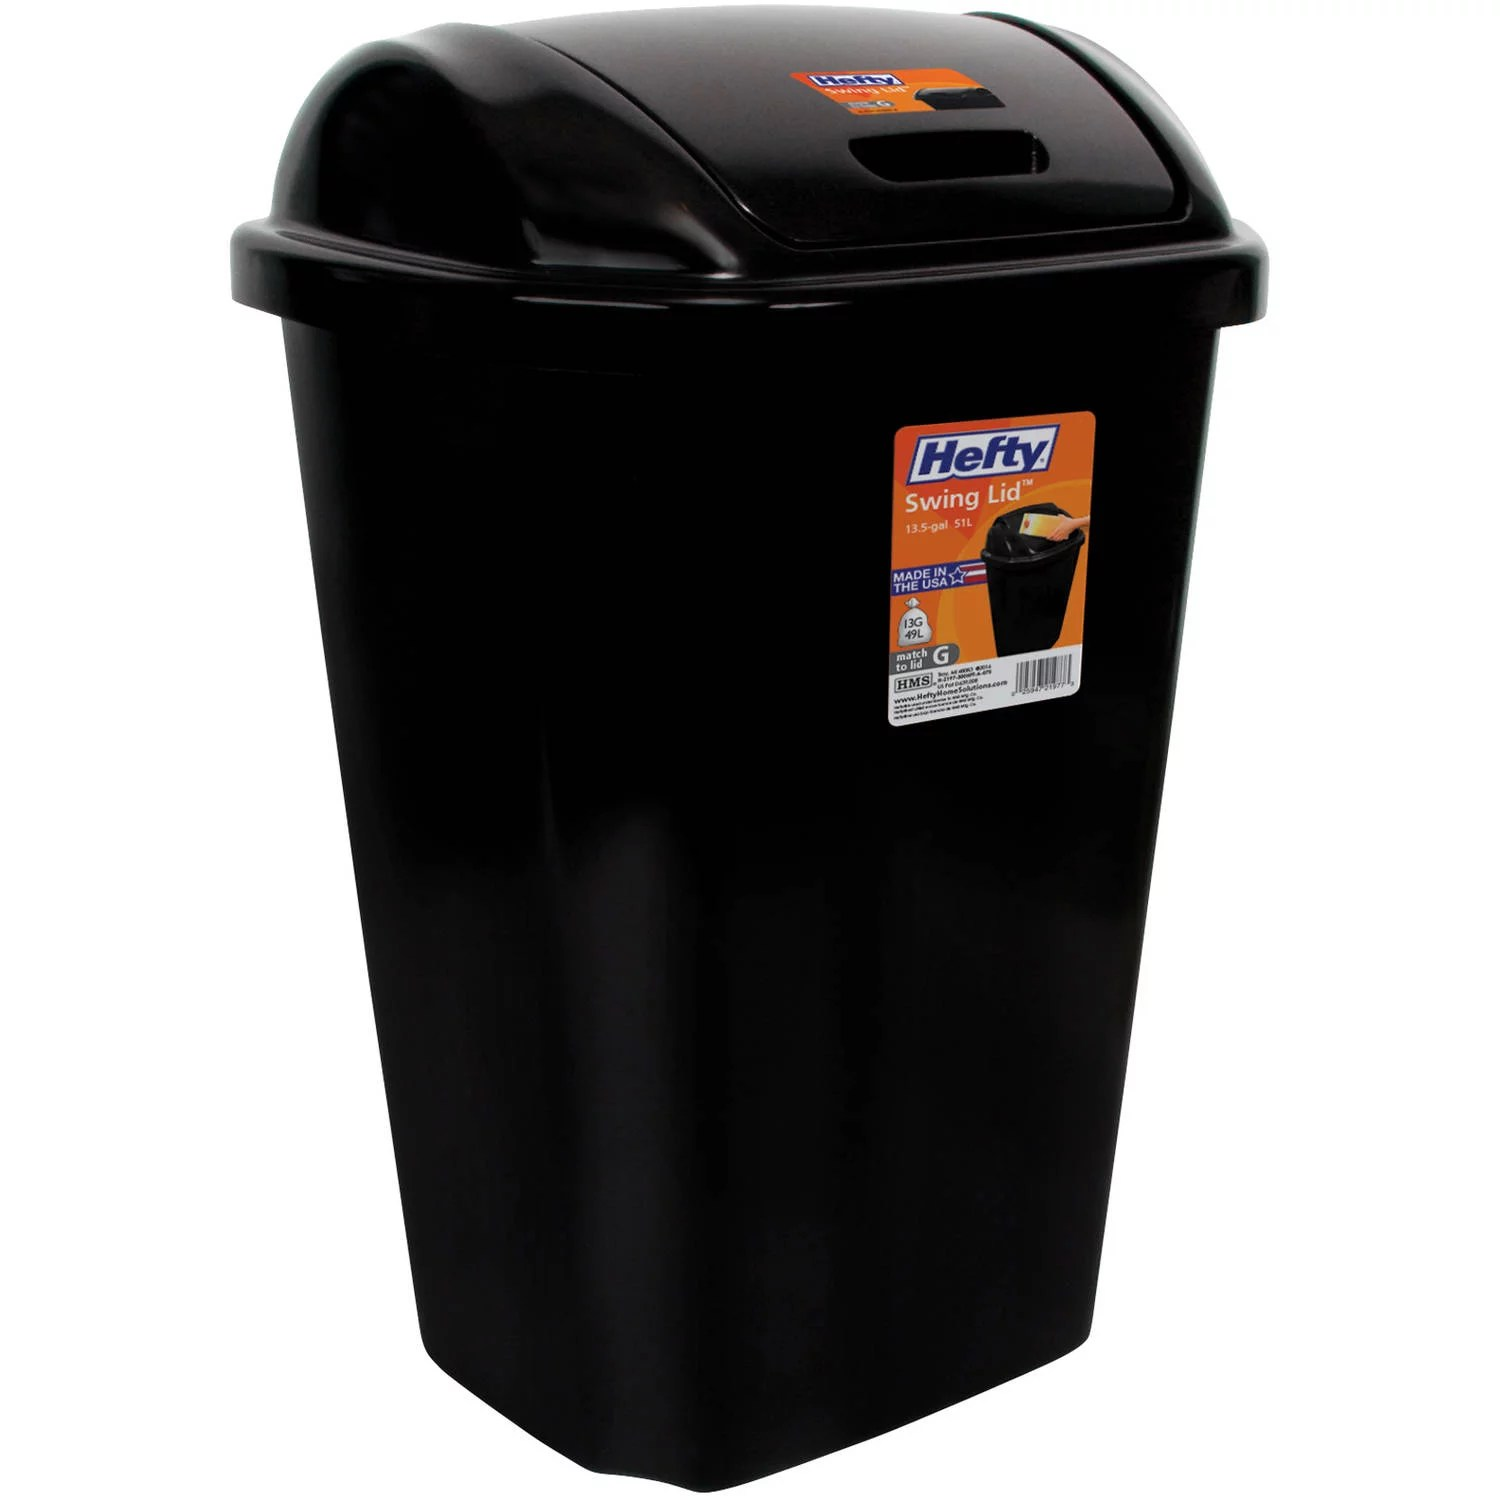 Trash Can With Lid Kitchen Hefty Swing Lid 13 5 Gallon Trash Can Black Waste Basket